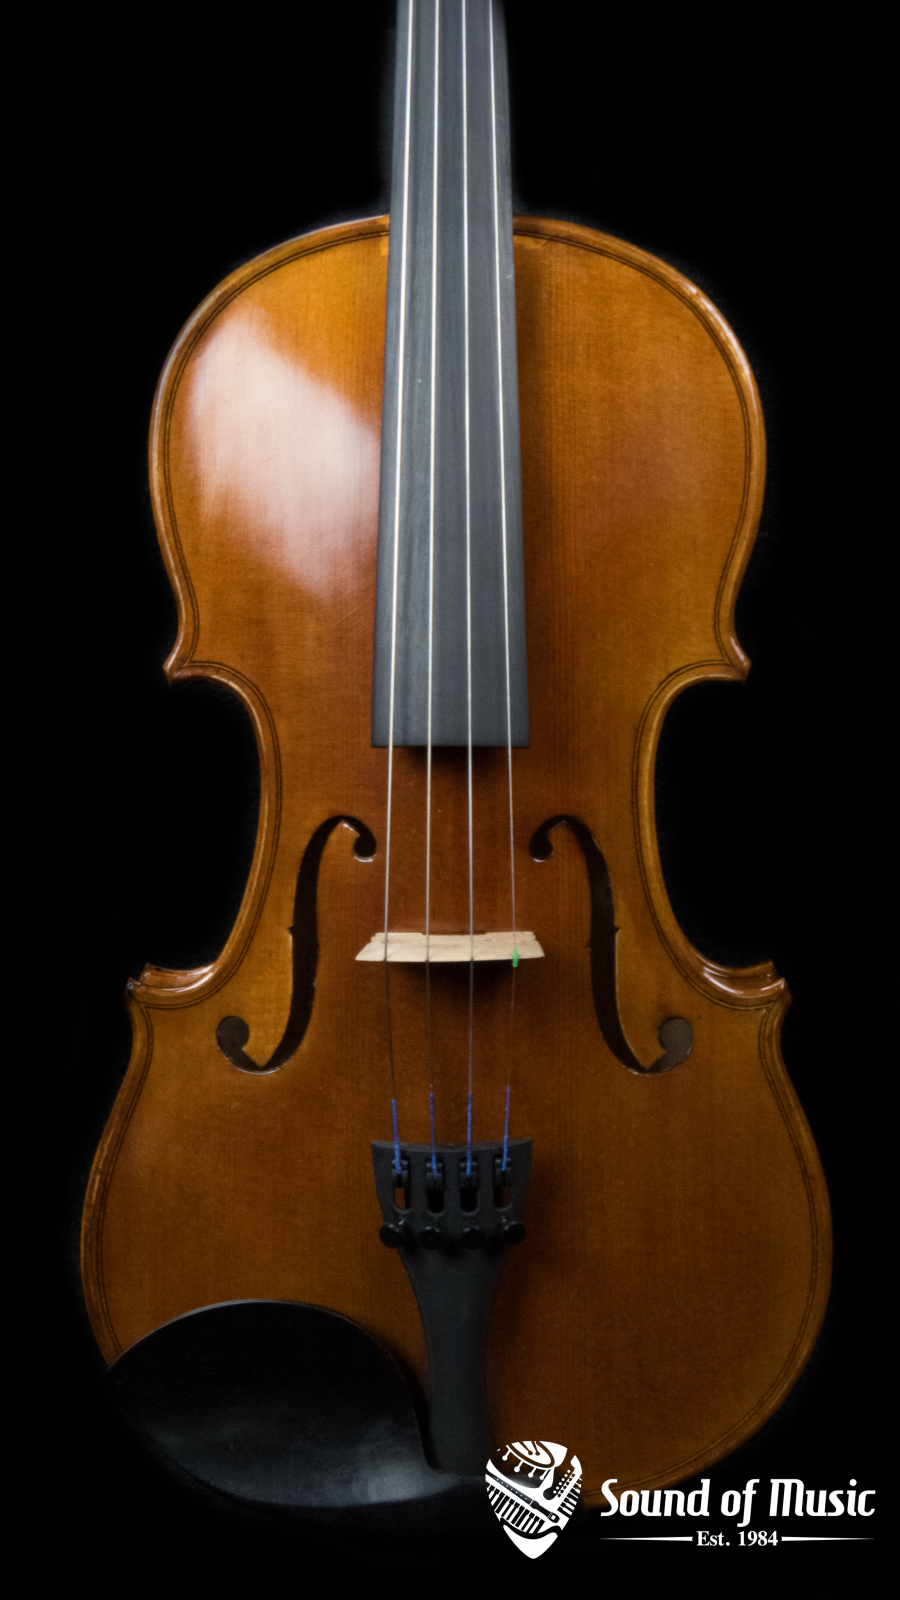 Knilling London Model Violin Outfit 1/2, 3/4, 4/4